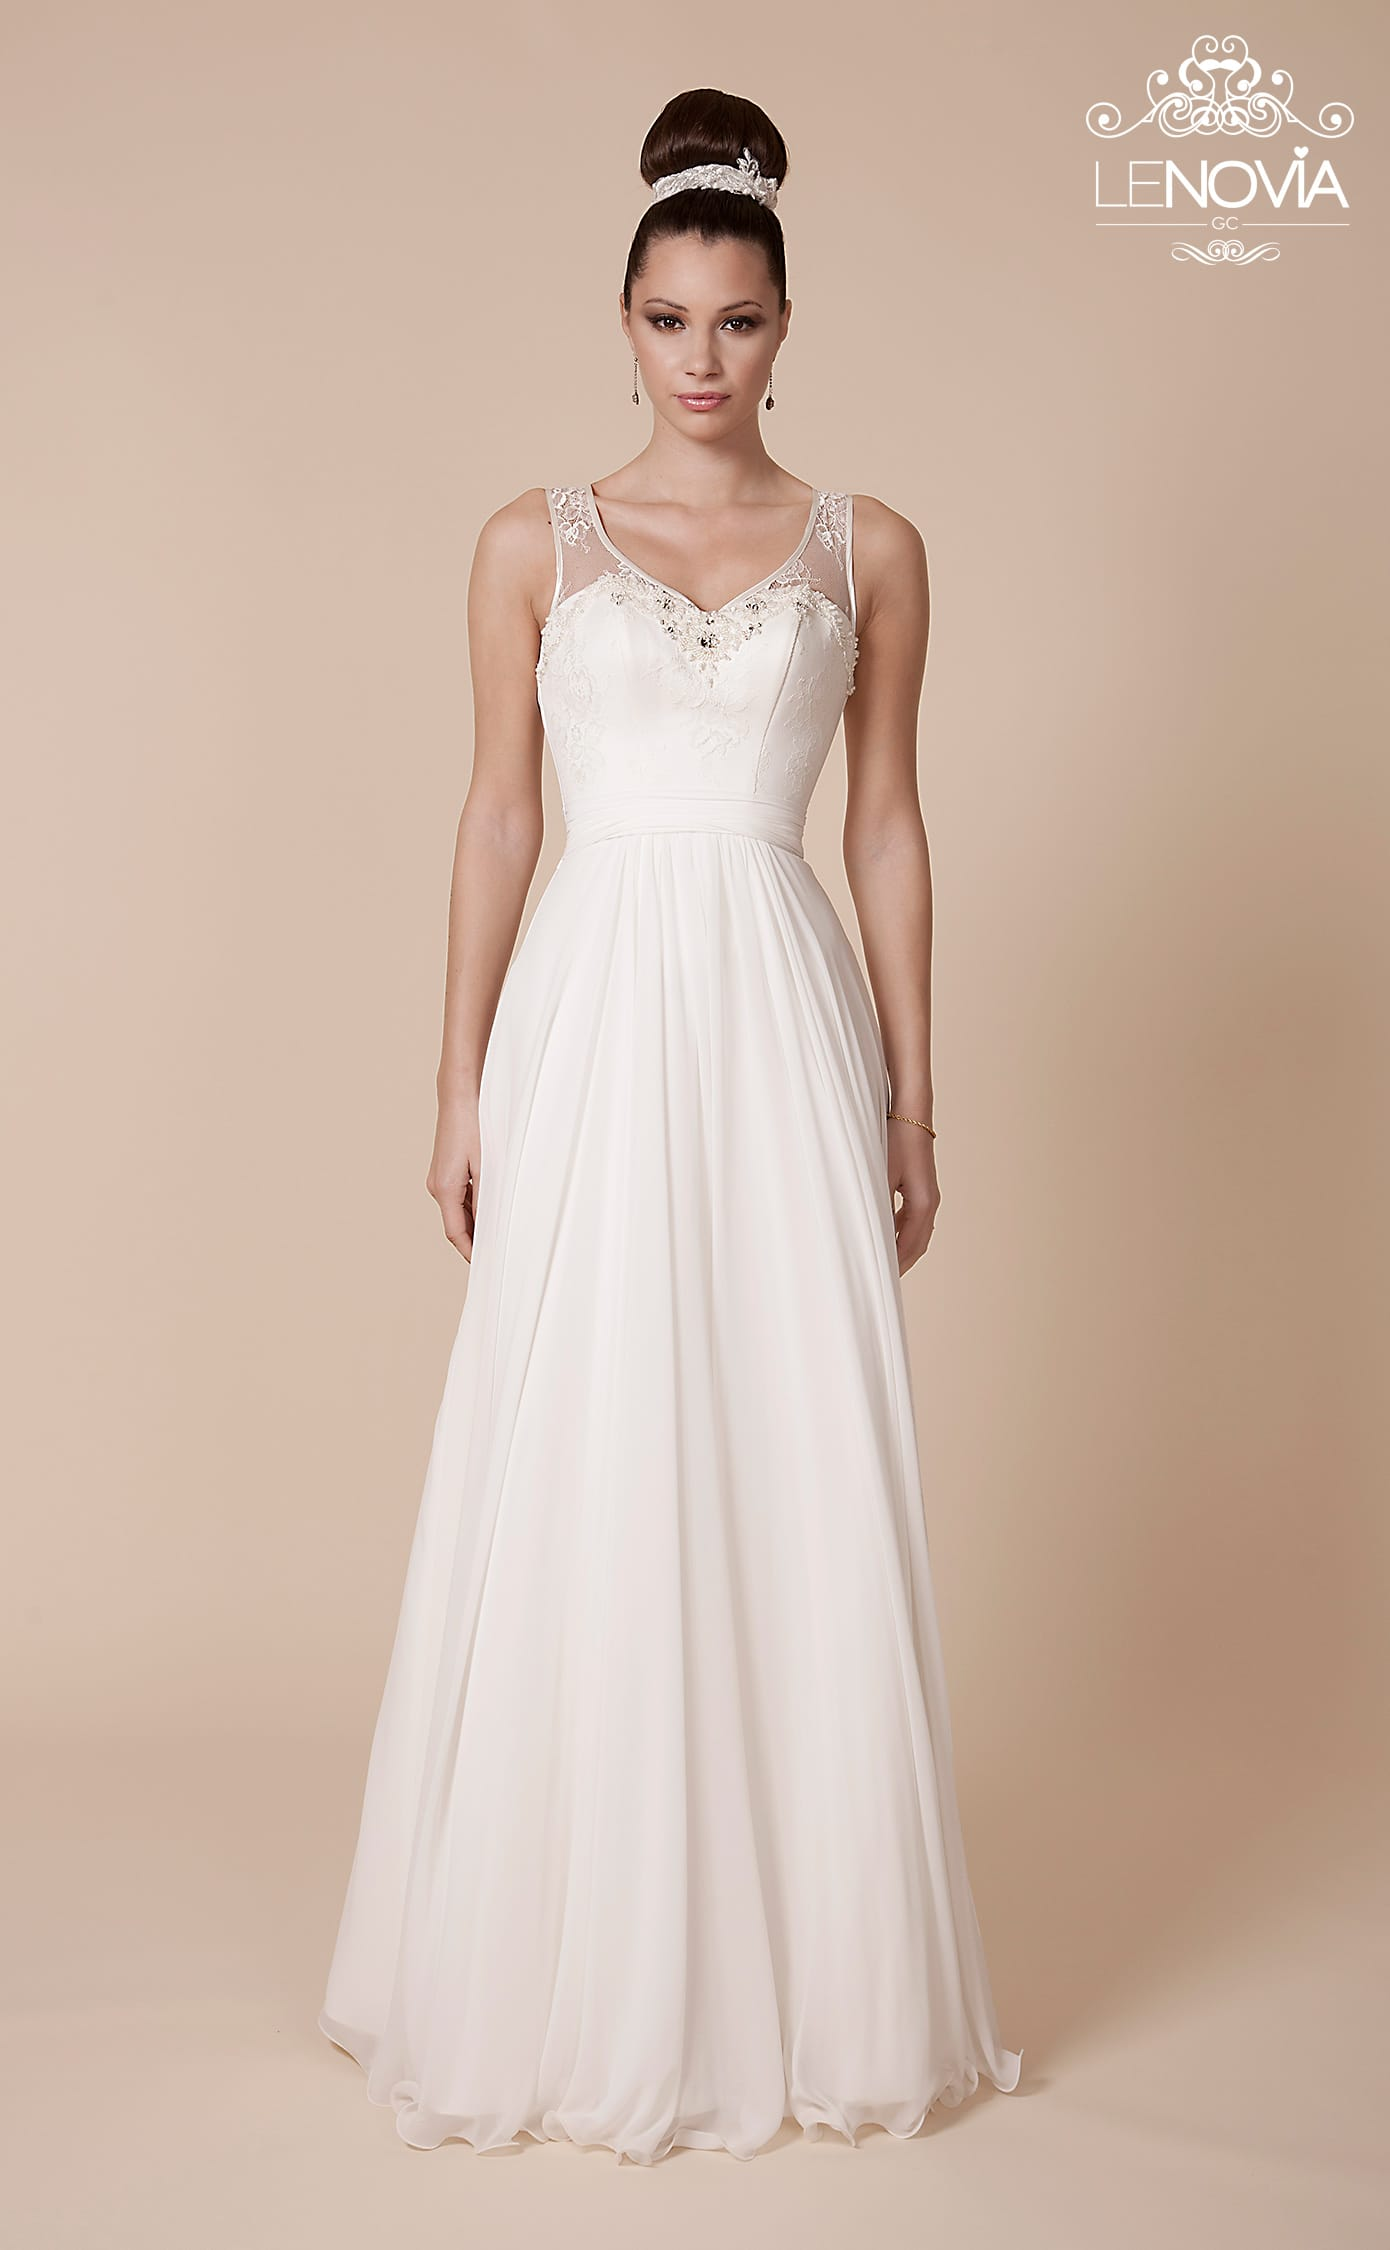 Lenovia sell my wedding dress online sell my wedding for Buy designer wedding dresses online